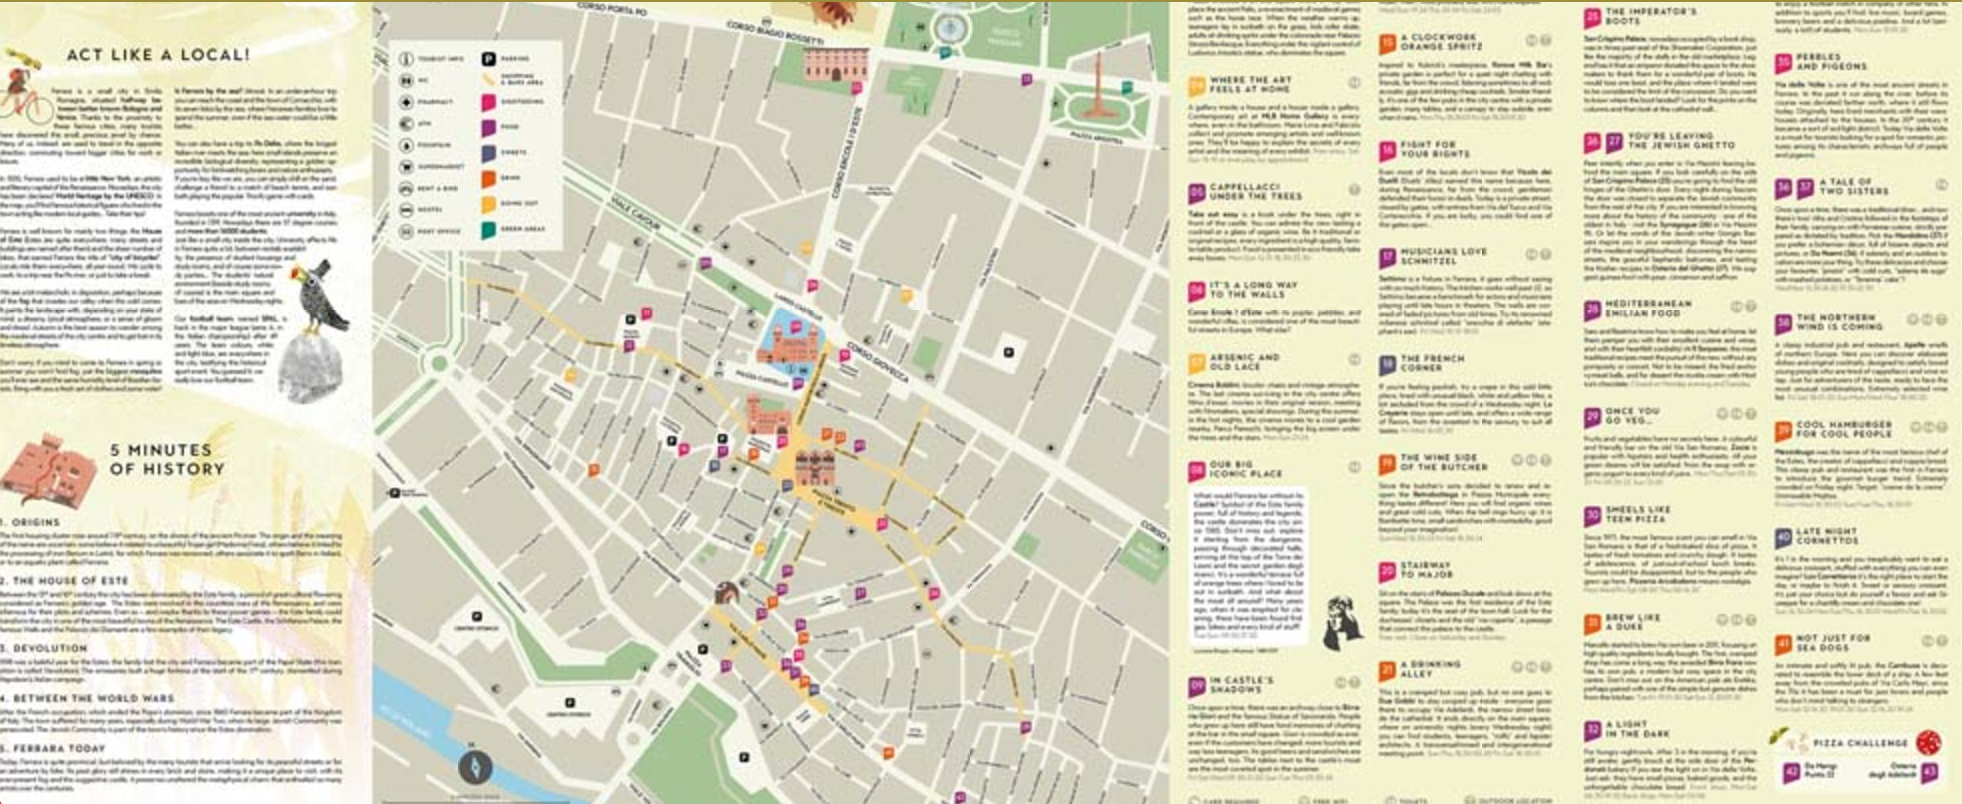 USE-IT Ferrara, a new way to discover the city